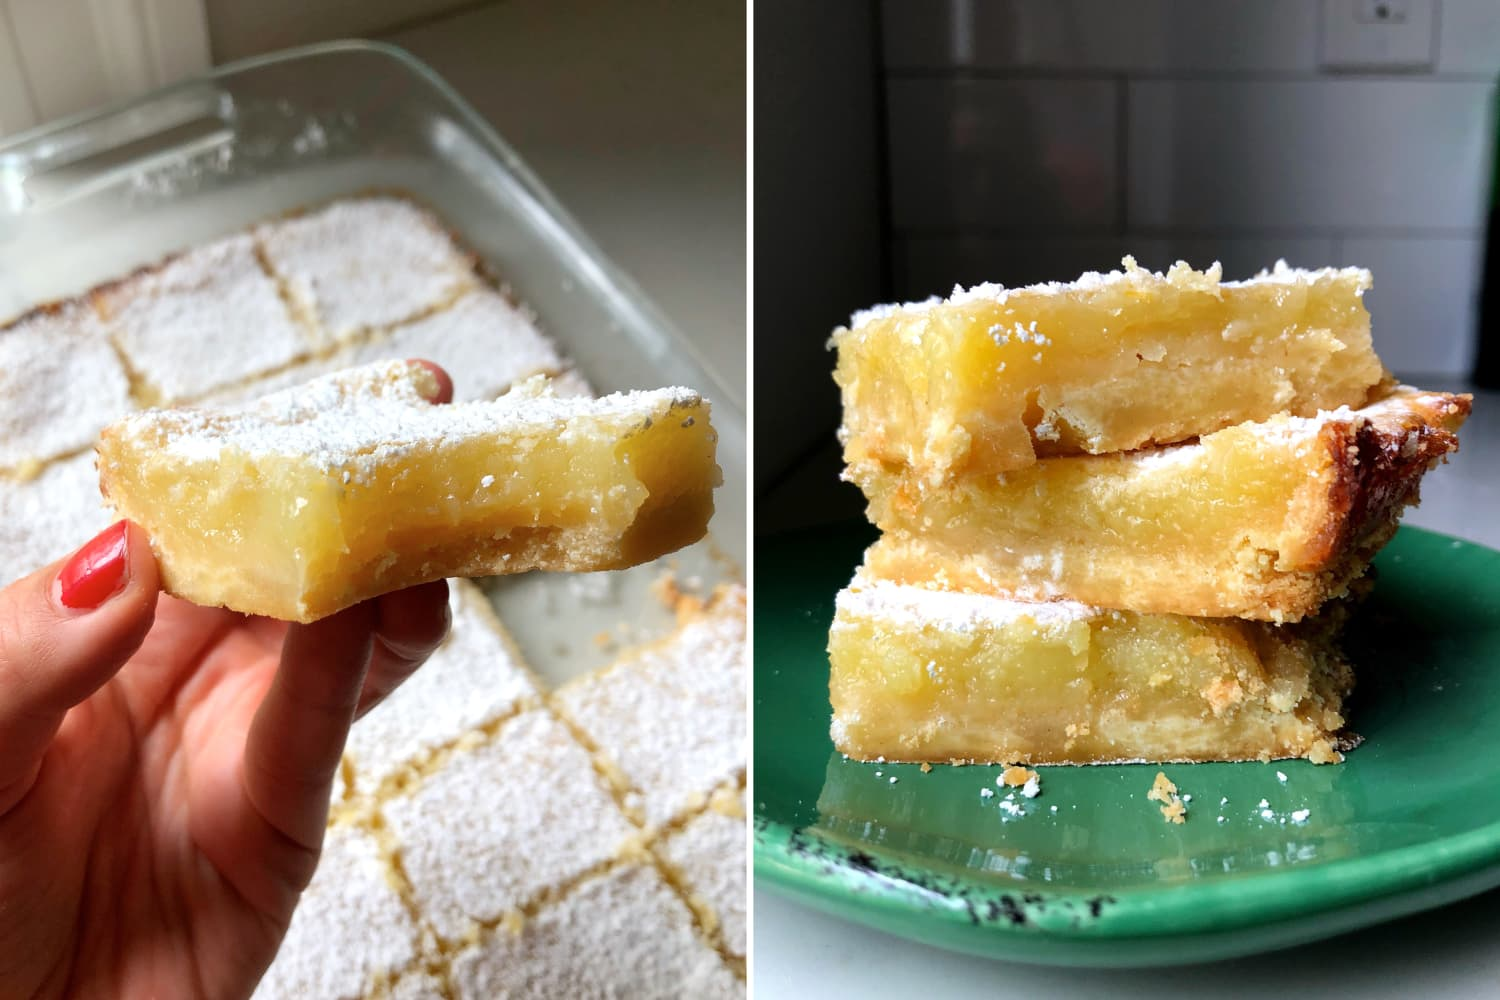 """I Tried the """"Grandma's Lemon Bars"""" Recipe Reddit Is Going Nuts Over — And I Have Some Tips"""